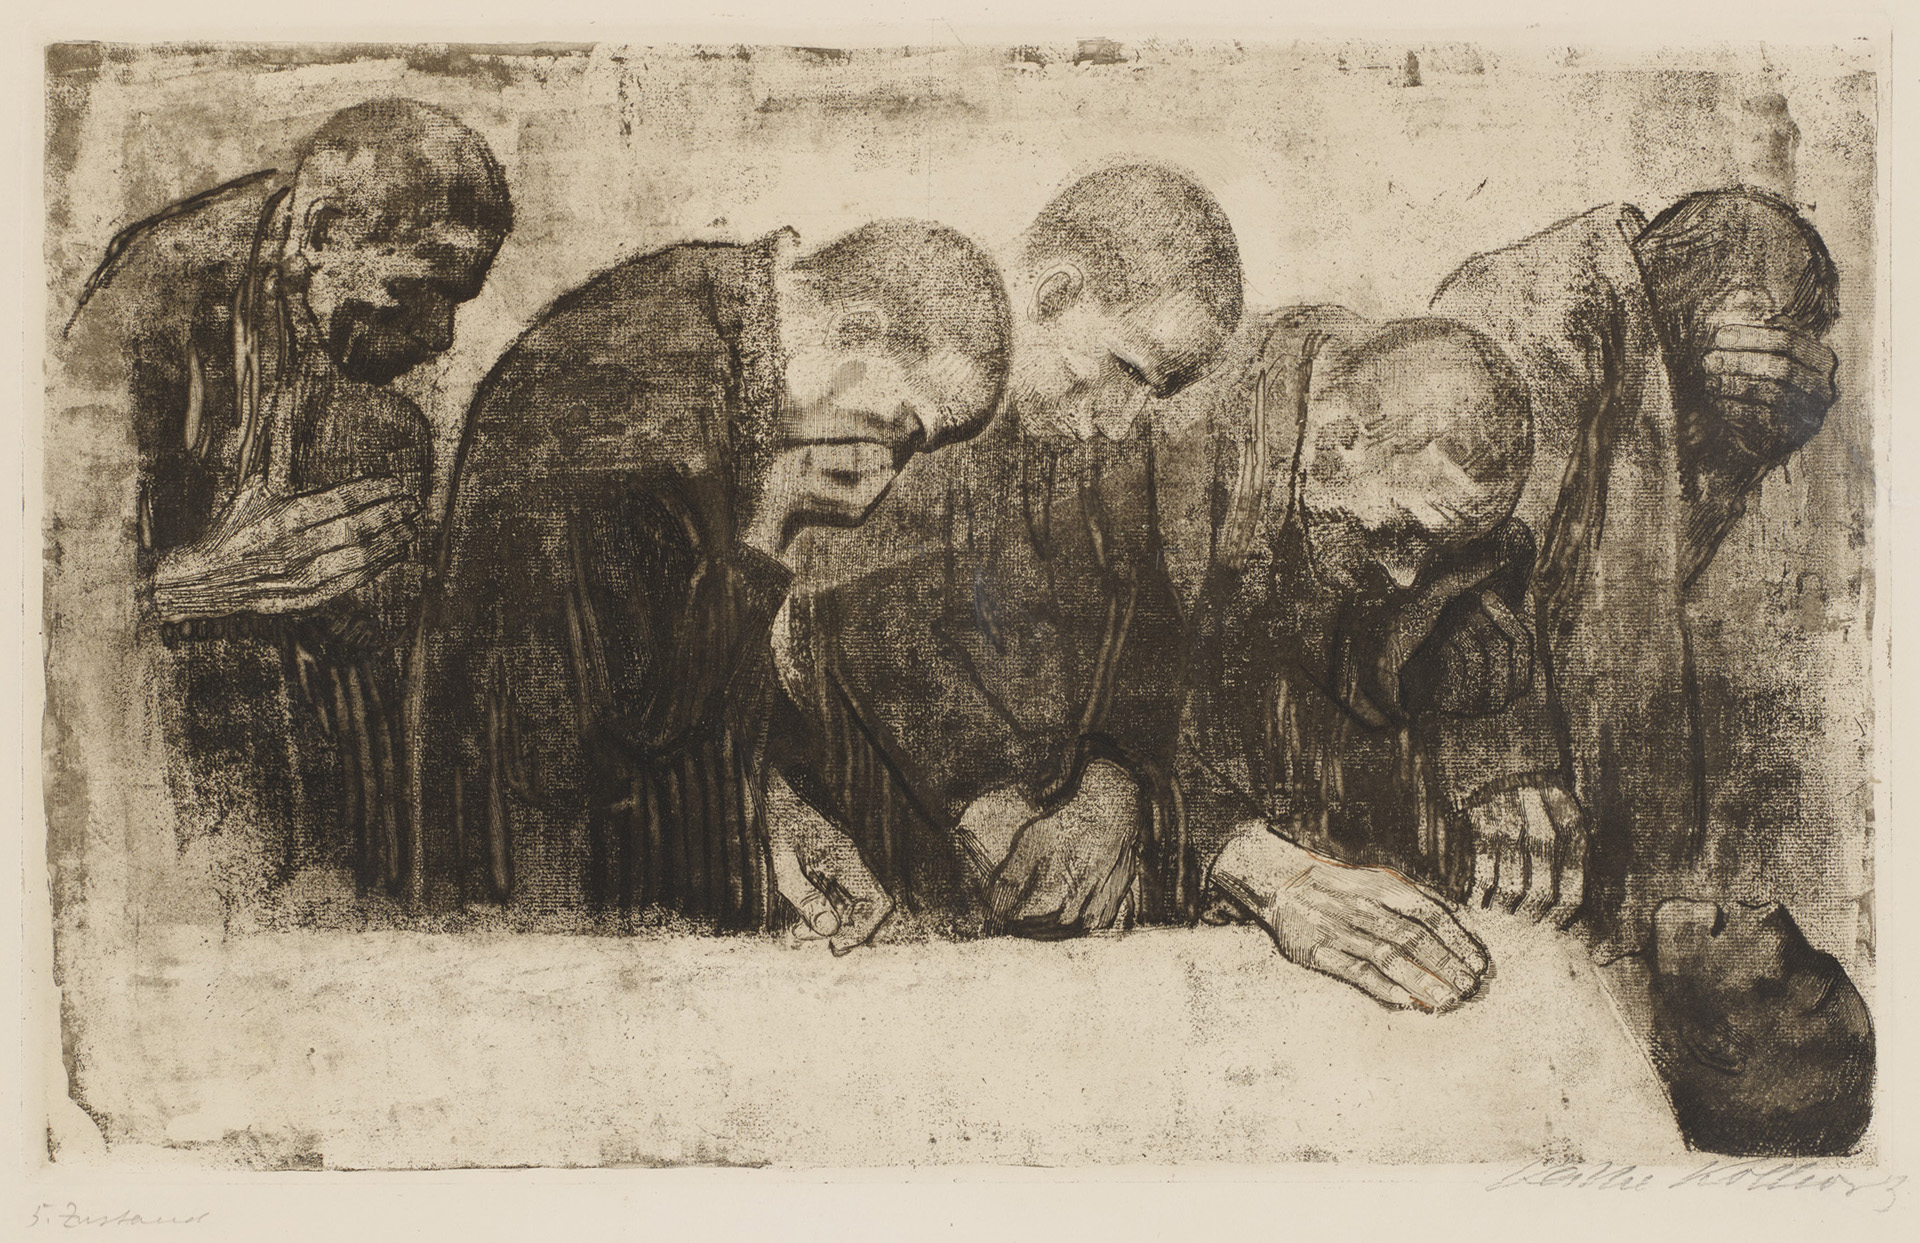 Käthe Kollwitz, In Memoriam Karl Liebknecht, rejected first version, 1919, line etching, aquatint, sandpaper, reservage and soft ground with imprint of laid paper, Kn 145 V, Cologne Kollwitz Collection © Käthe Kollwitz Museum Köln